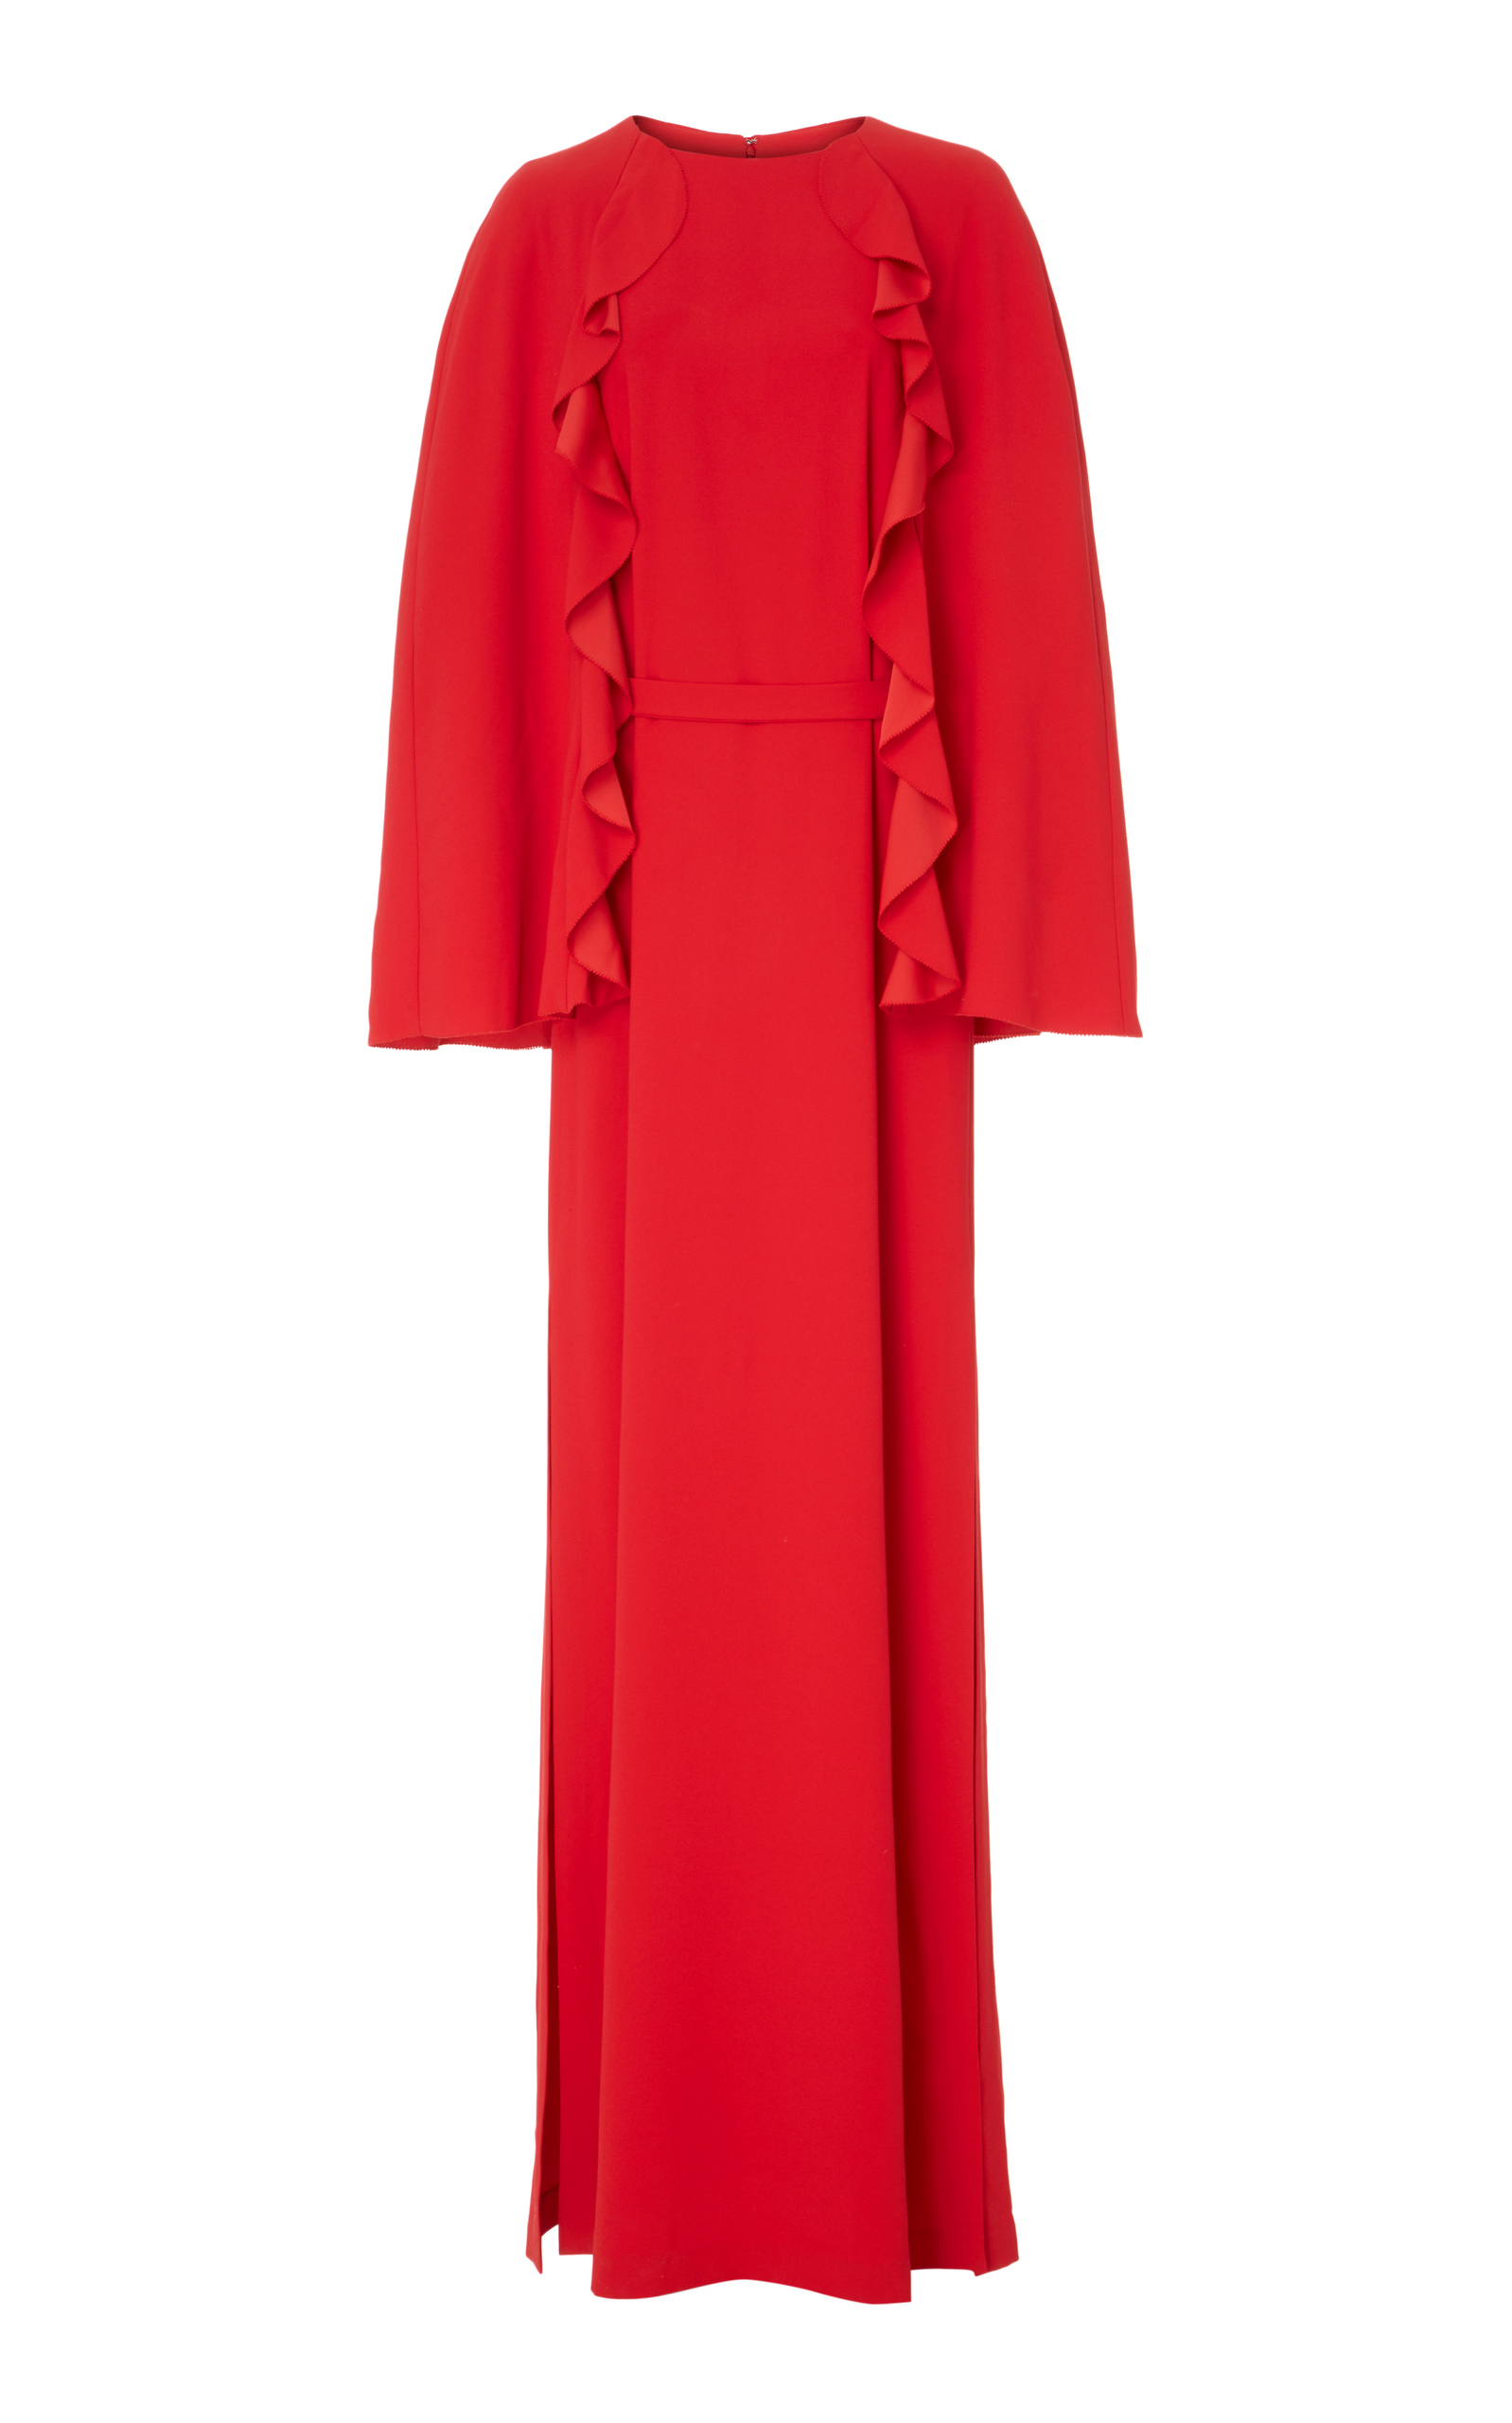 CAPE-EFFECT RUFFLE TRIMMED MAXI DRESS